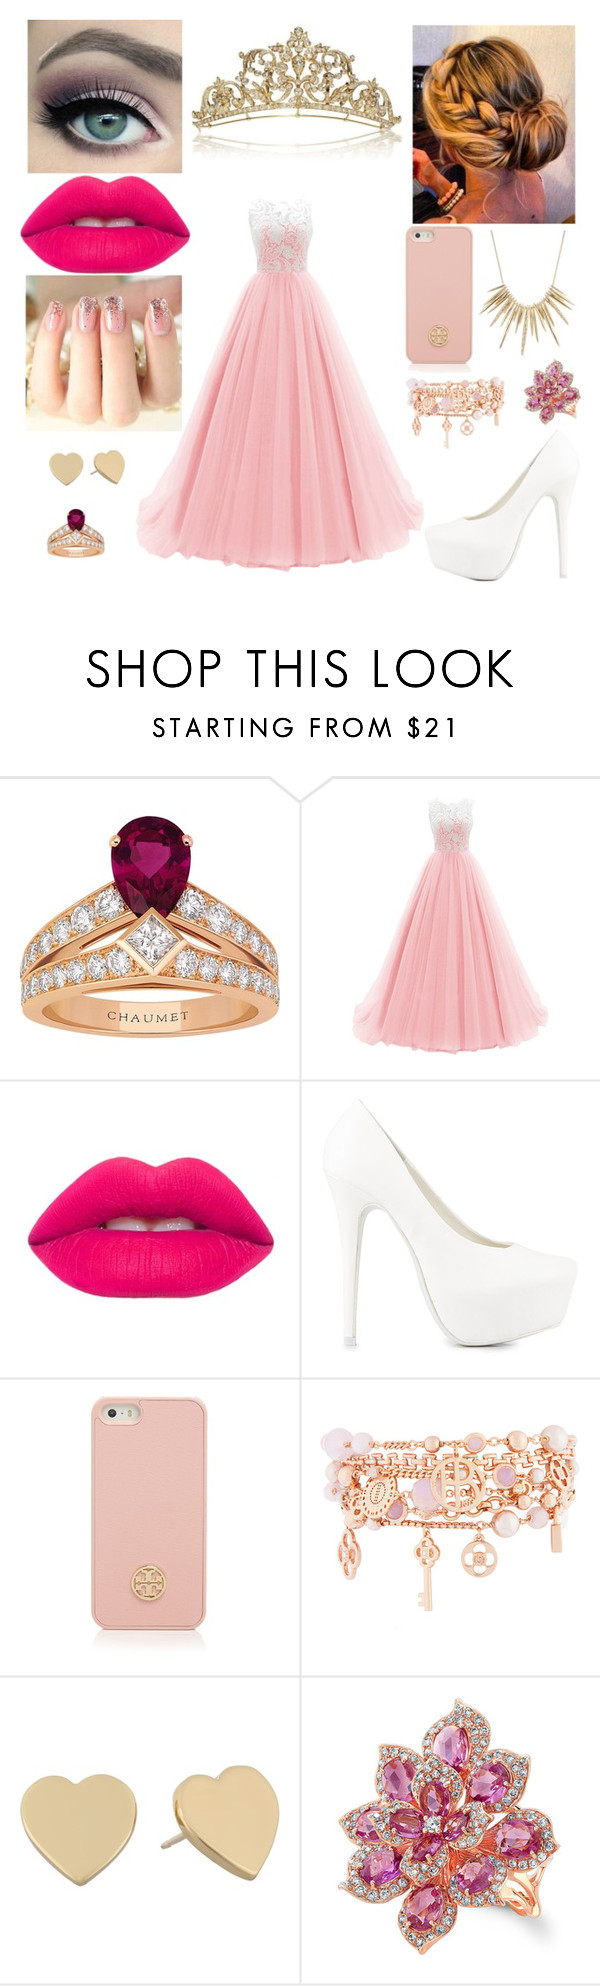 """""""Untitled #309"""" by cah-princess ❤ liked on Polyvore featuring Chaumet, ncLA, Lime Crime, Nly Shoes, Tory Burch, Henri Bendel, Kate Spade and Alexis Bittar"""